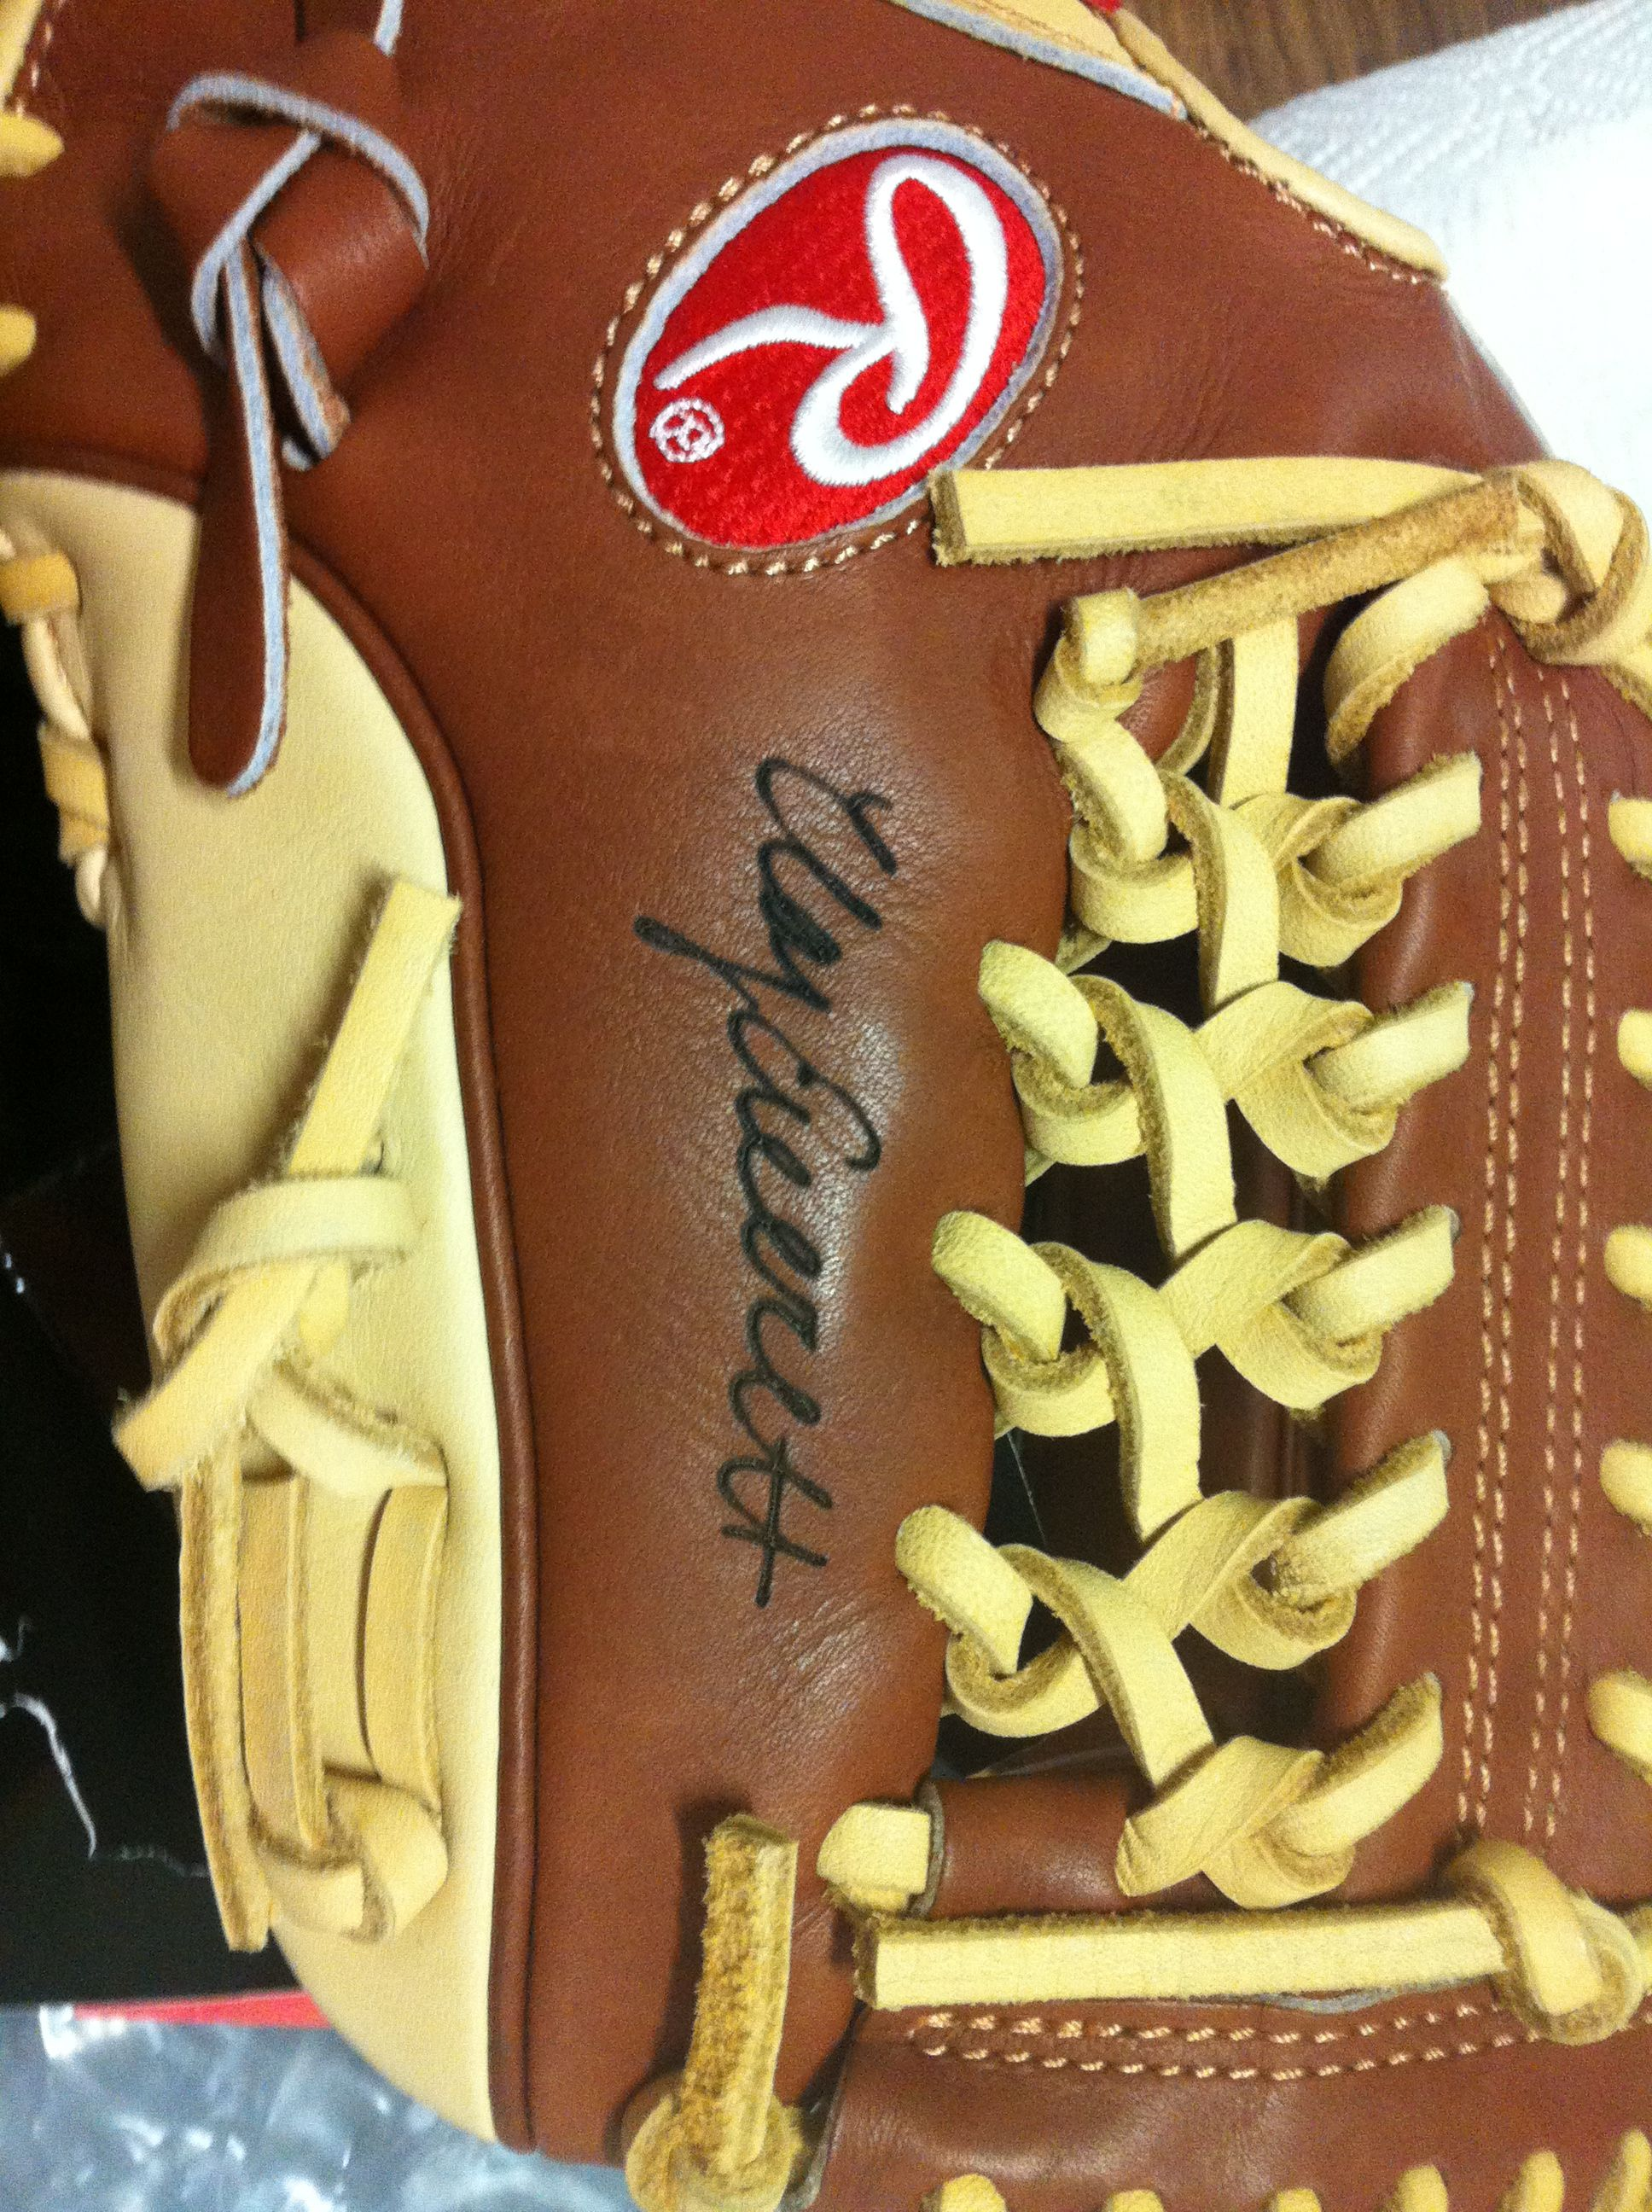 Here S A Cool Idea For The Baseball Lovers Provide Your Signature And We Will Engrave It On Your Glove How Awe Engraving Services Laser Engraving Engraving